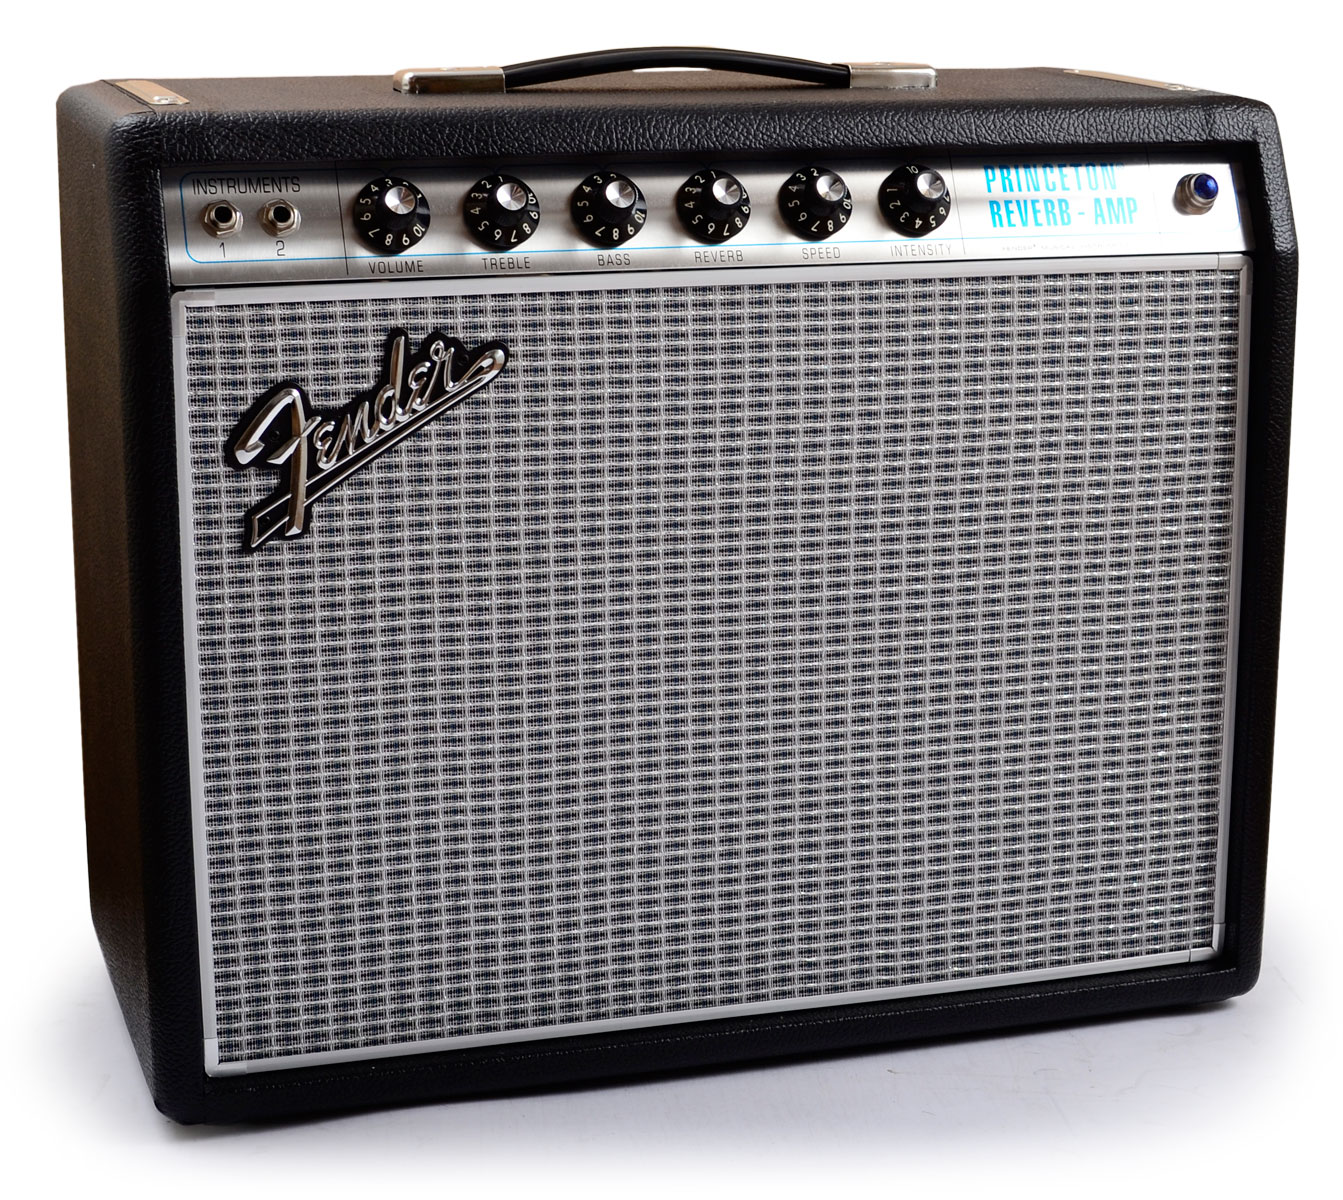 fender 68 custom princeton reverb tone report rh tonereport com fender super sonic 22 head manual fender super sonic 22 head manual